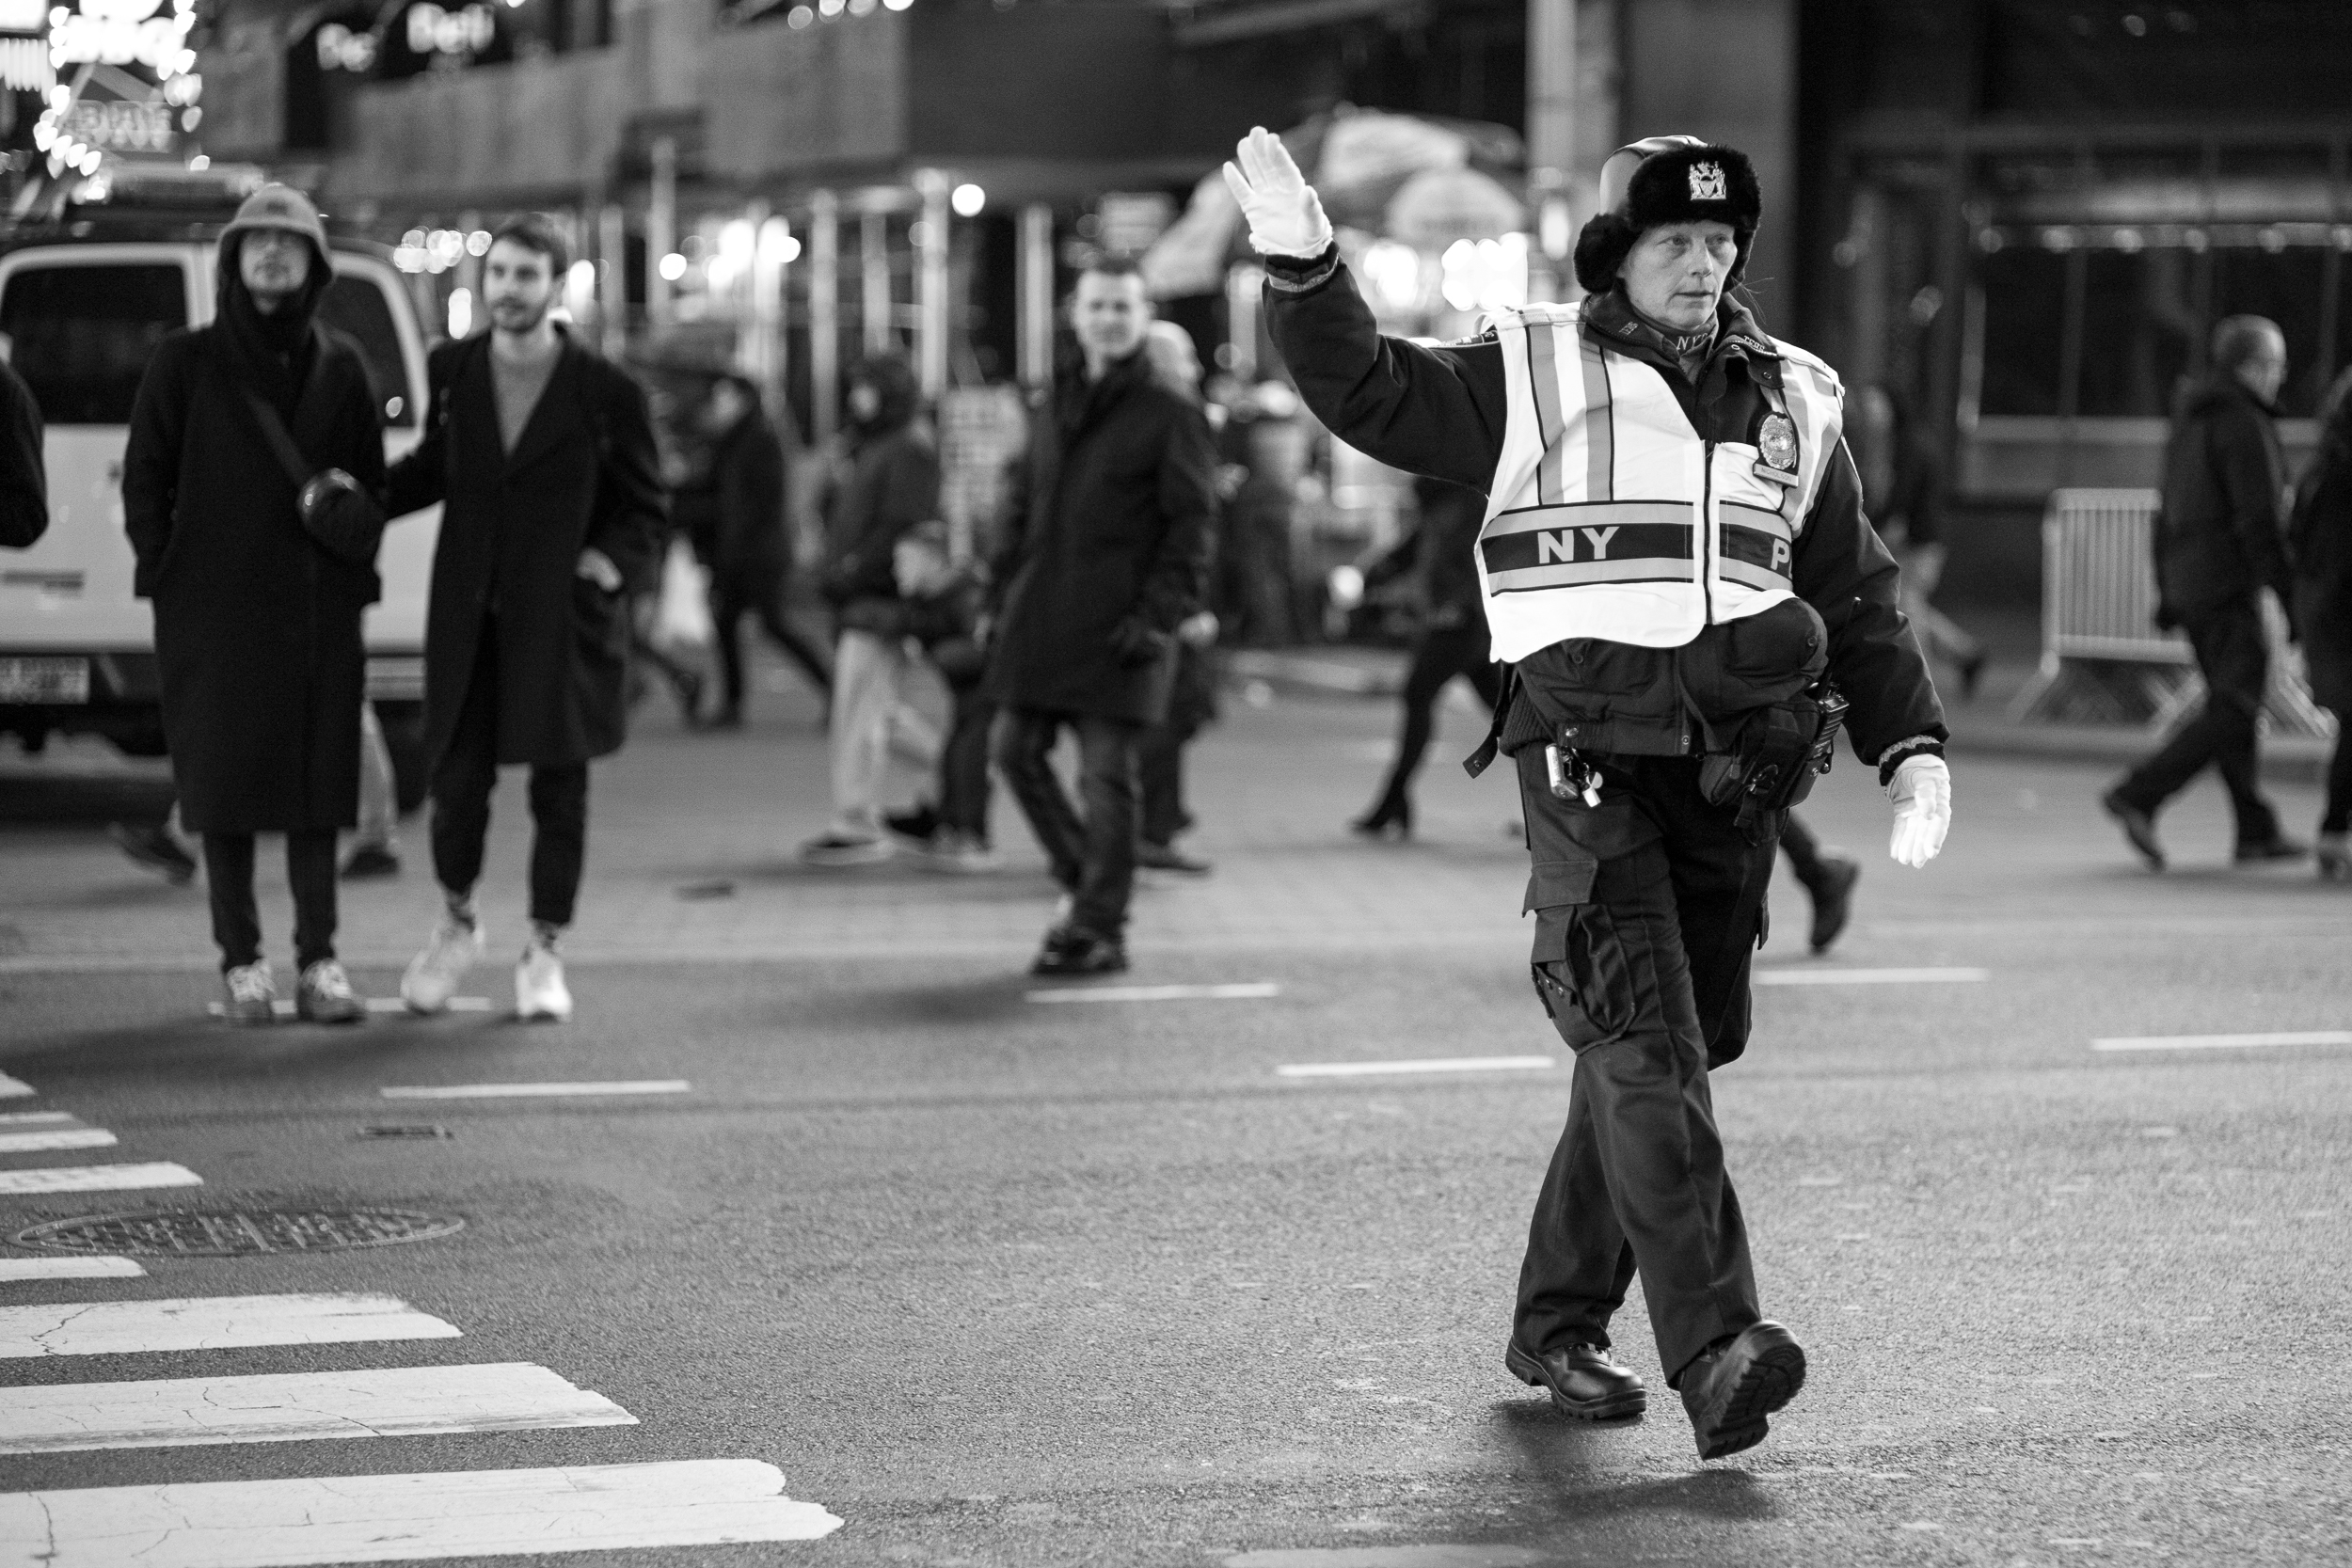 Crowd Control. A NYPD officer directs traffic and keeps the crowds safe as thousands of holiday revelers descend on New York's most popular attractions.Leica M10 with 50mm Summicron f/2.